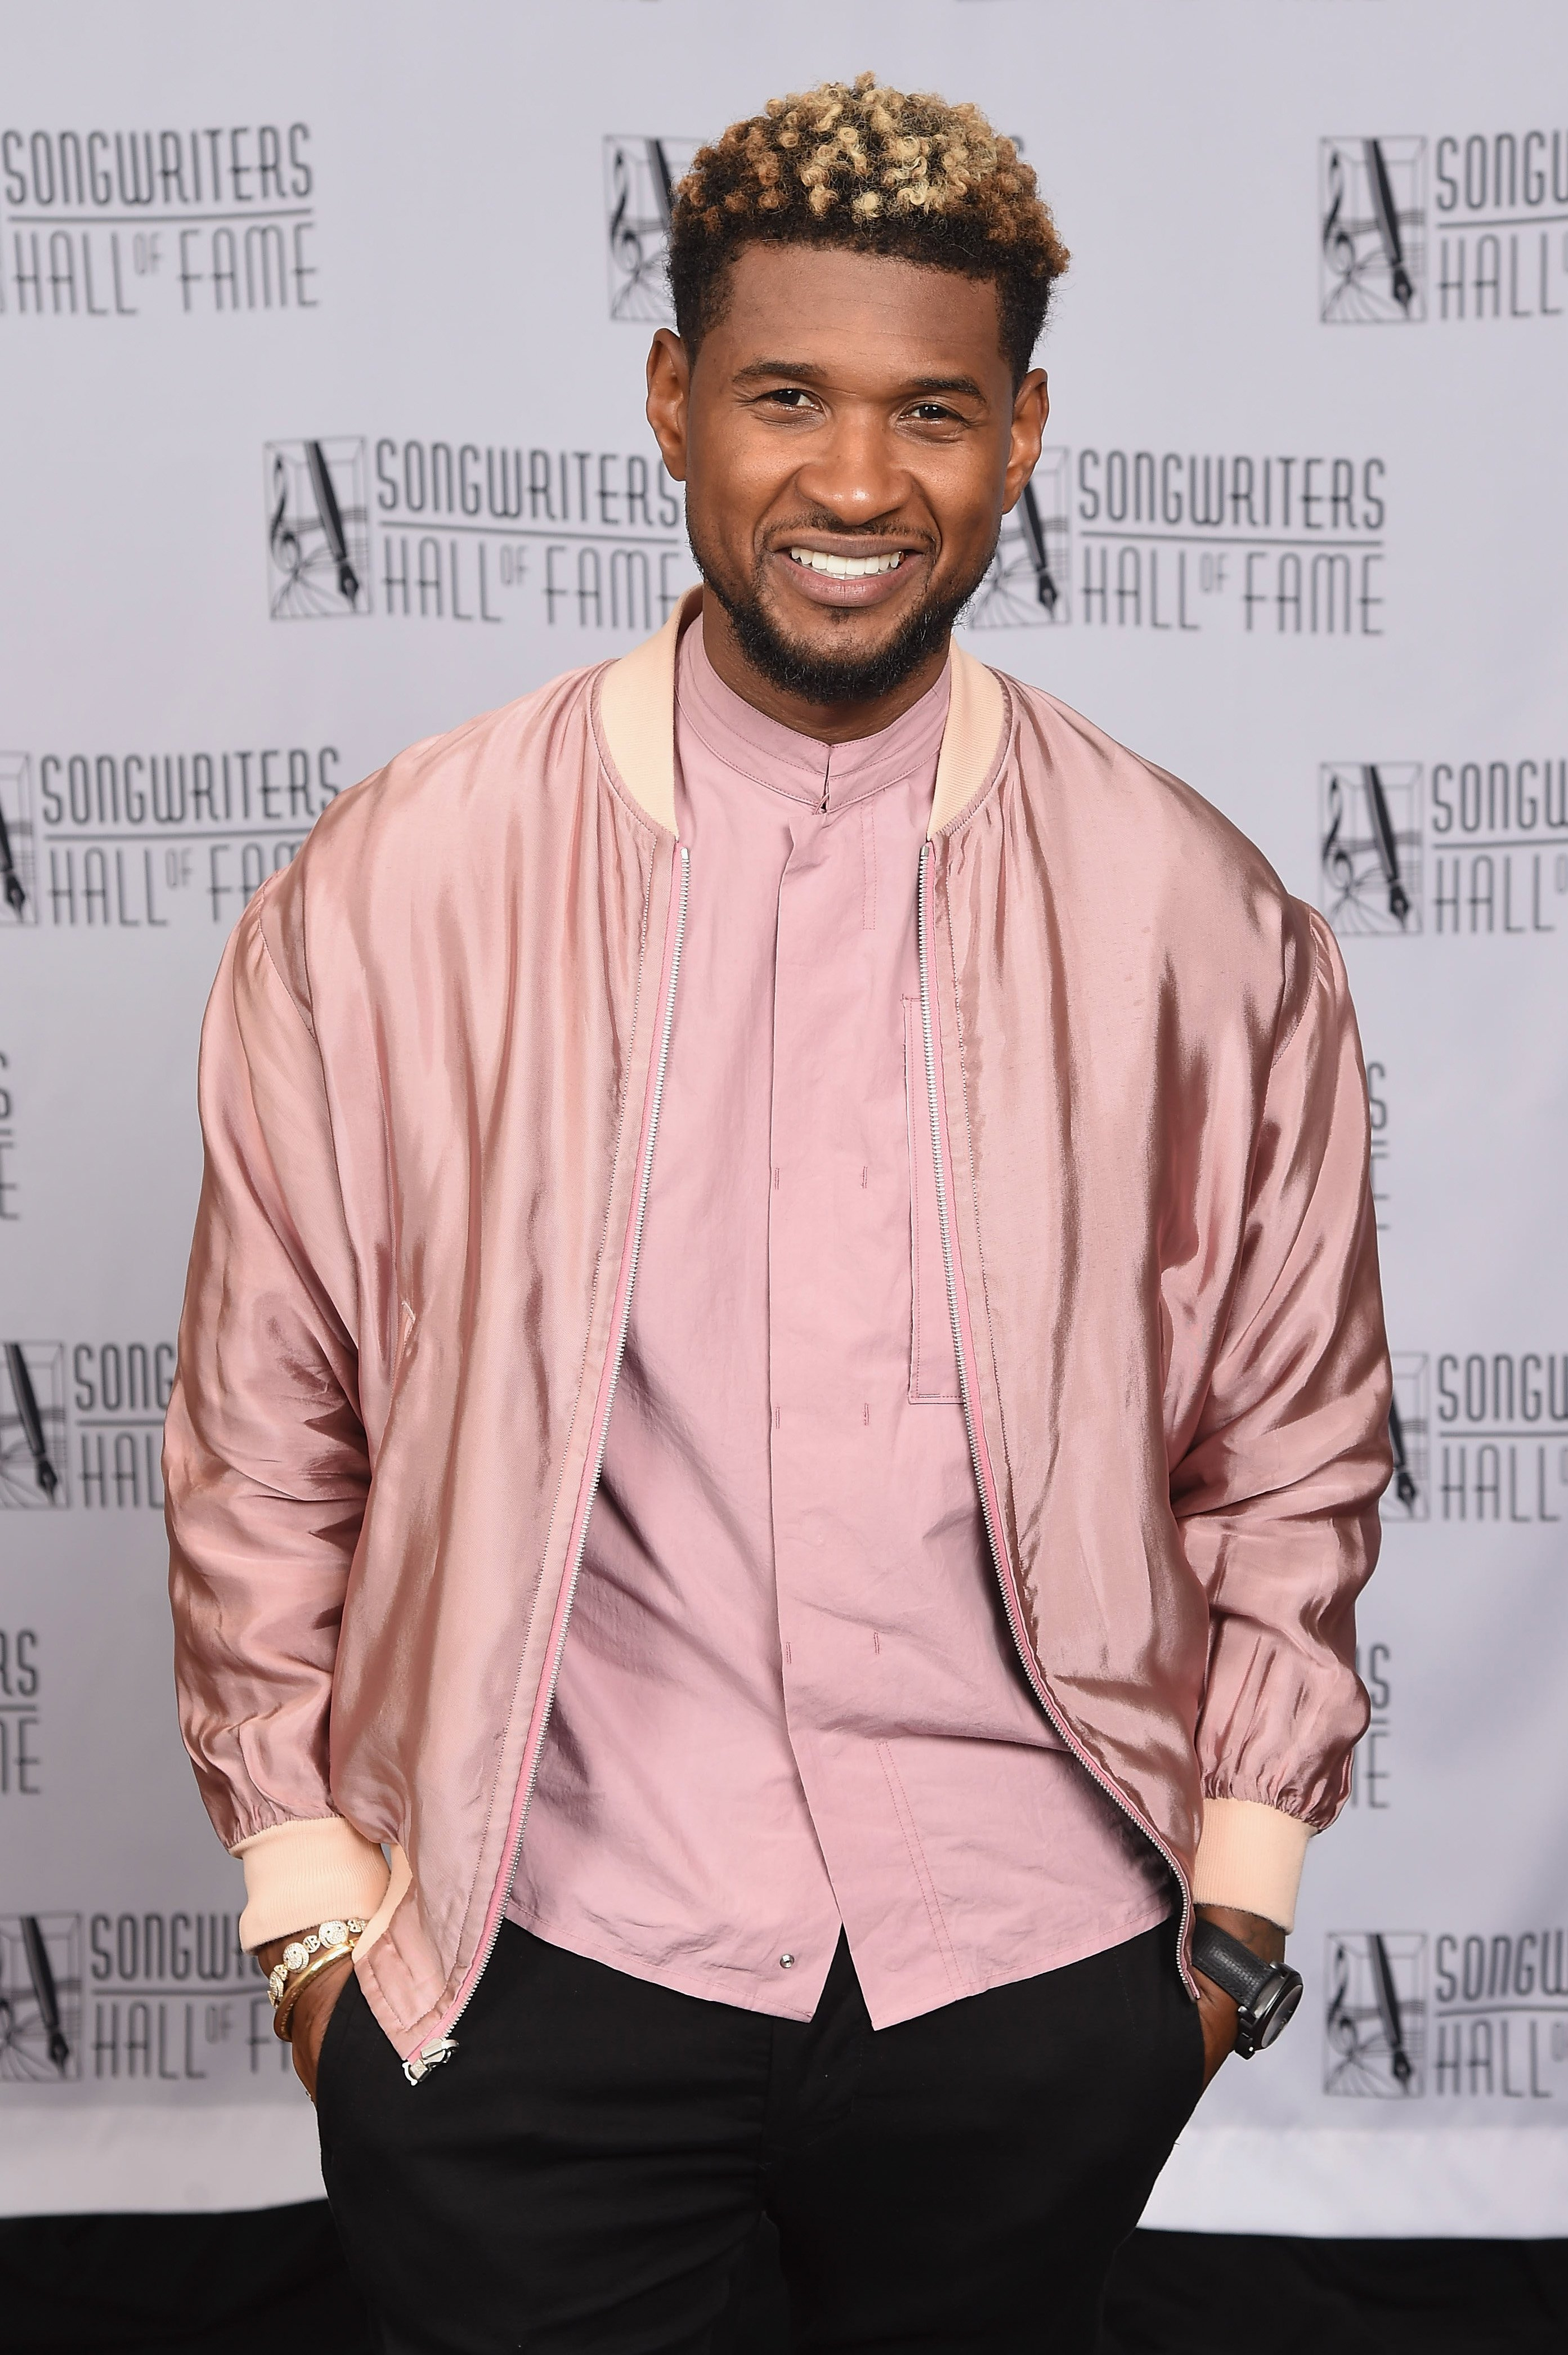 Usher posing backstage at the Songwriters Hall of Fame induction in June 2017. | Photo: Getty Images